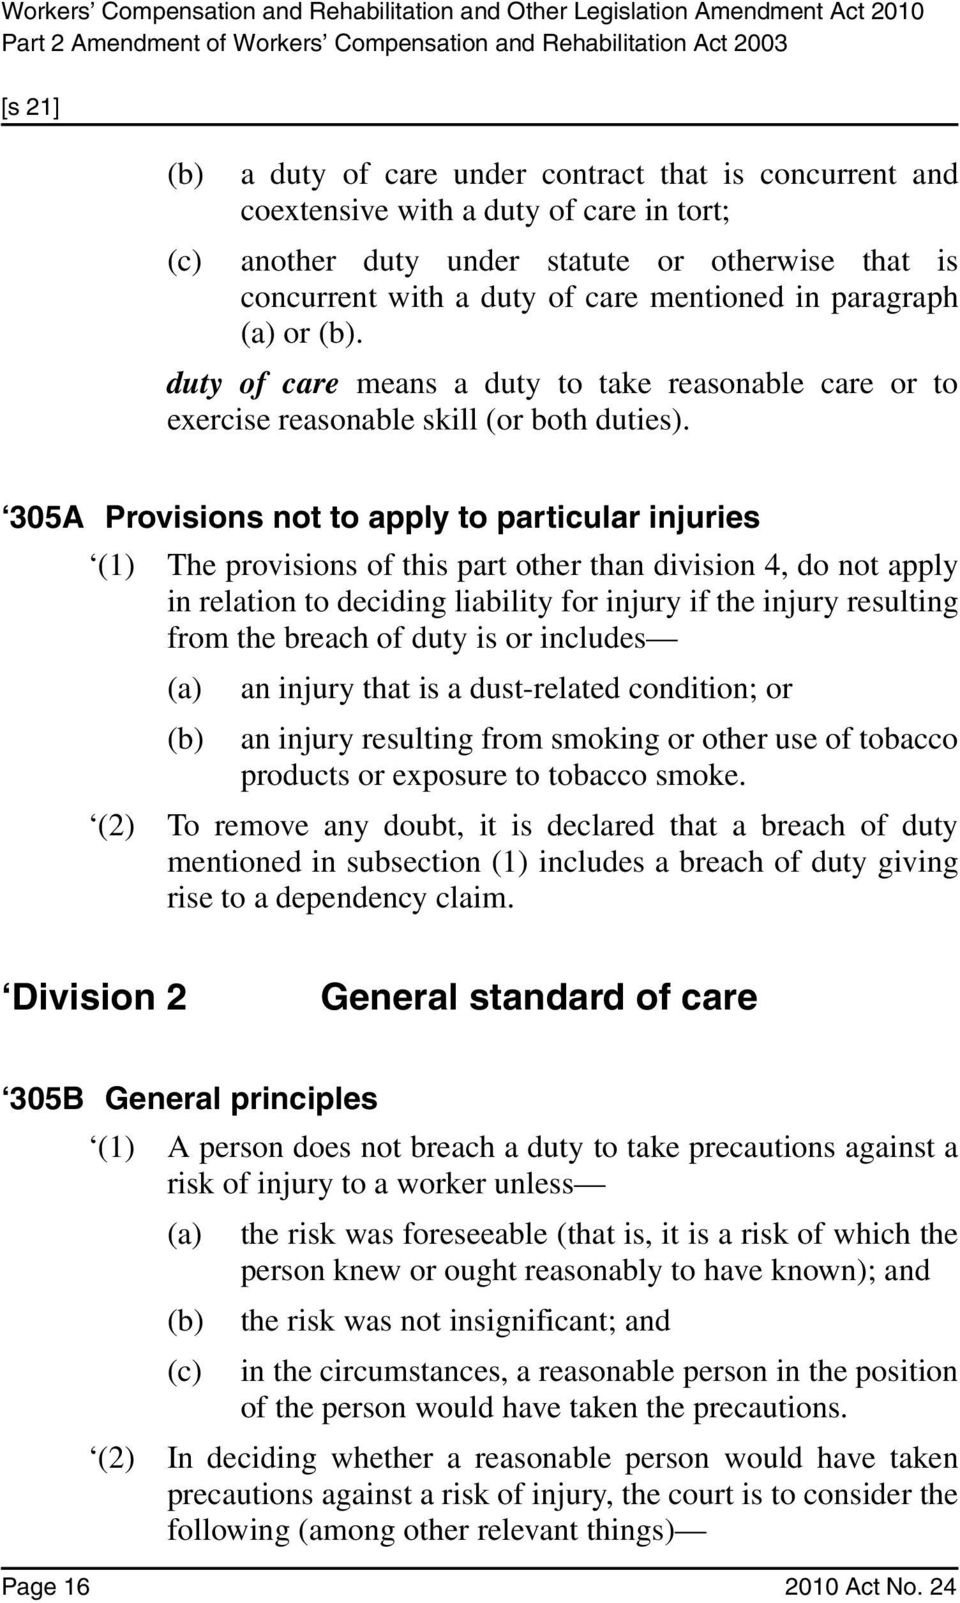 305A Provisions not to apply to particular injuries (1) The provisions of this part other than division 4, do not apply in relation to deciding liability for injury if the injury resulting from the